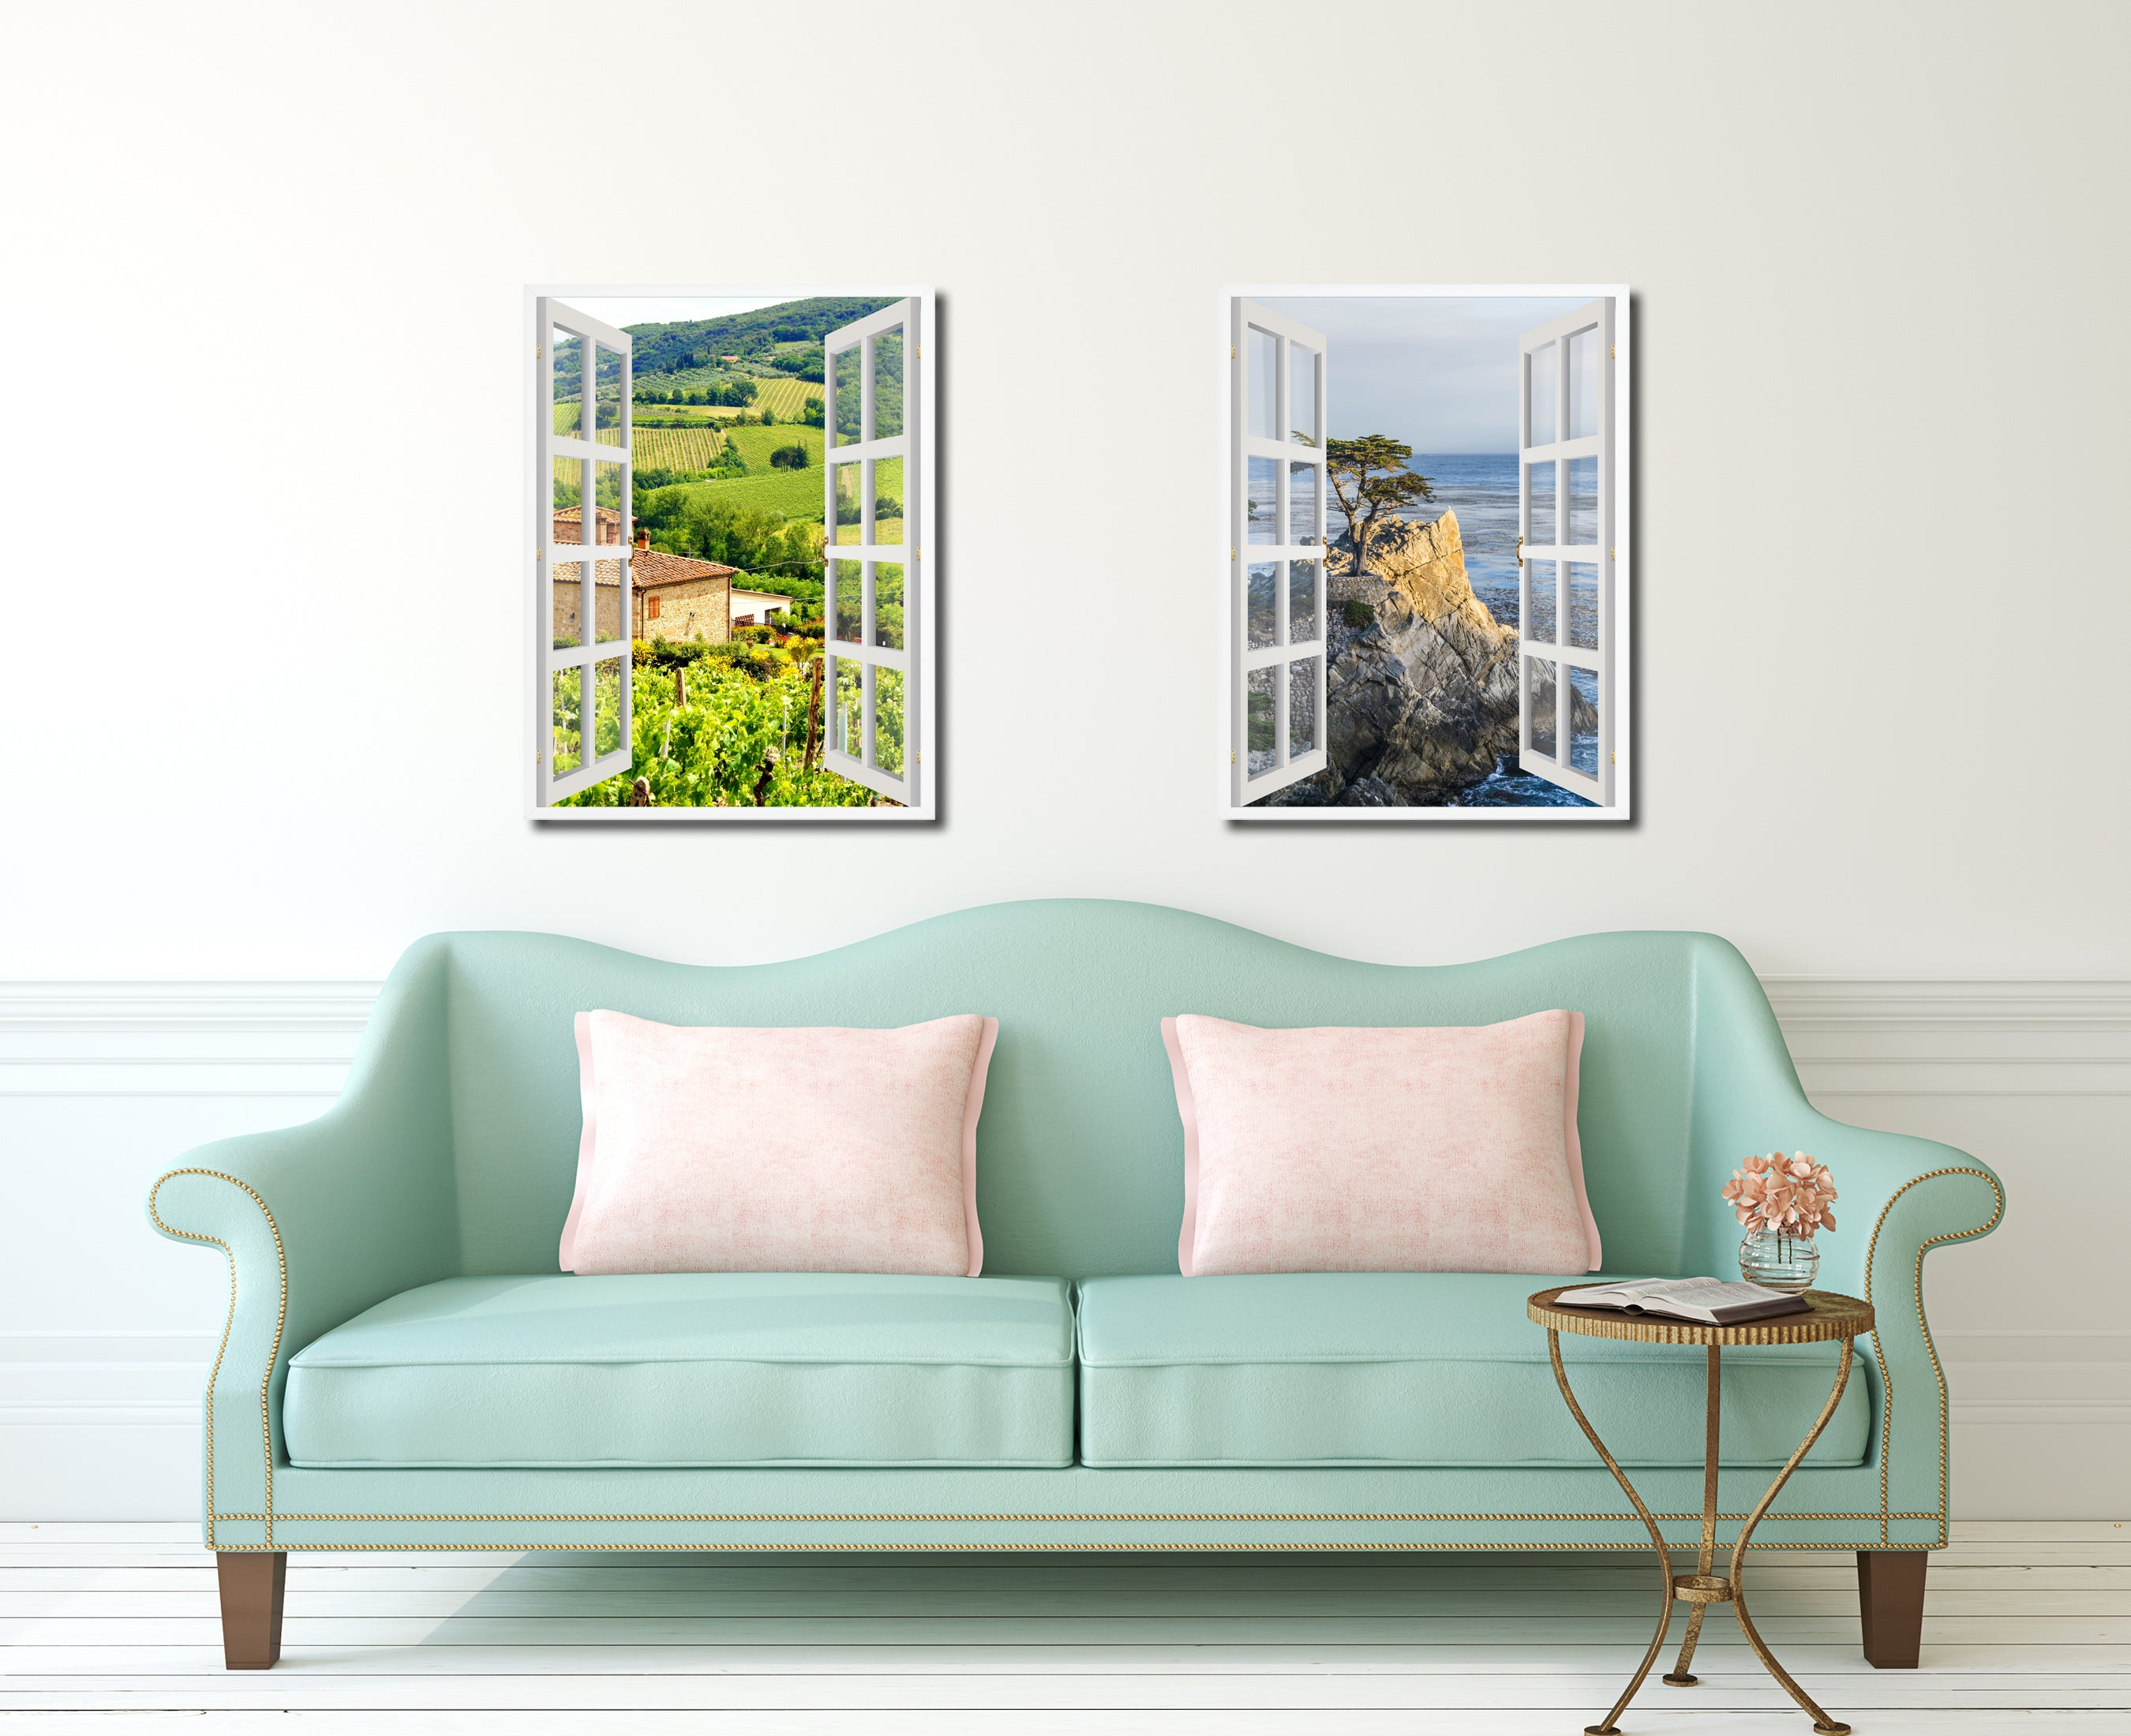 Wine Vineyards Tuscany Italy Picture Window Wall Art Home Decor Gift ...